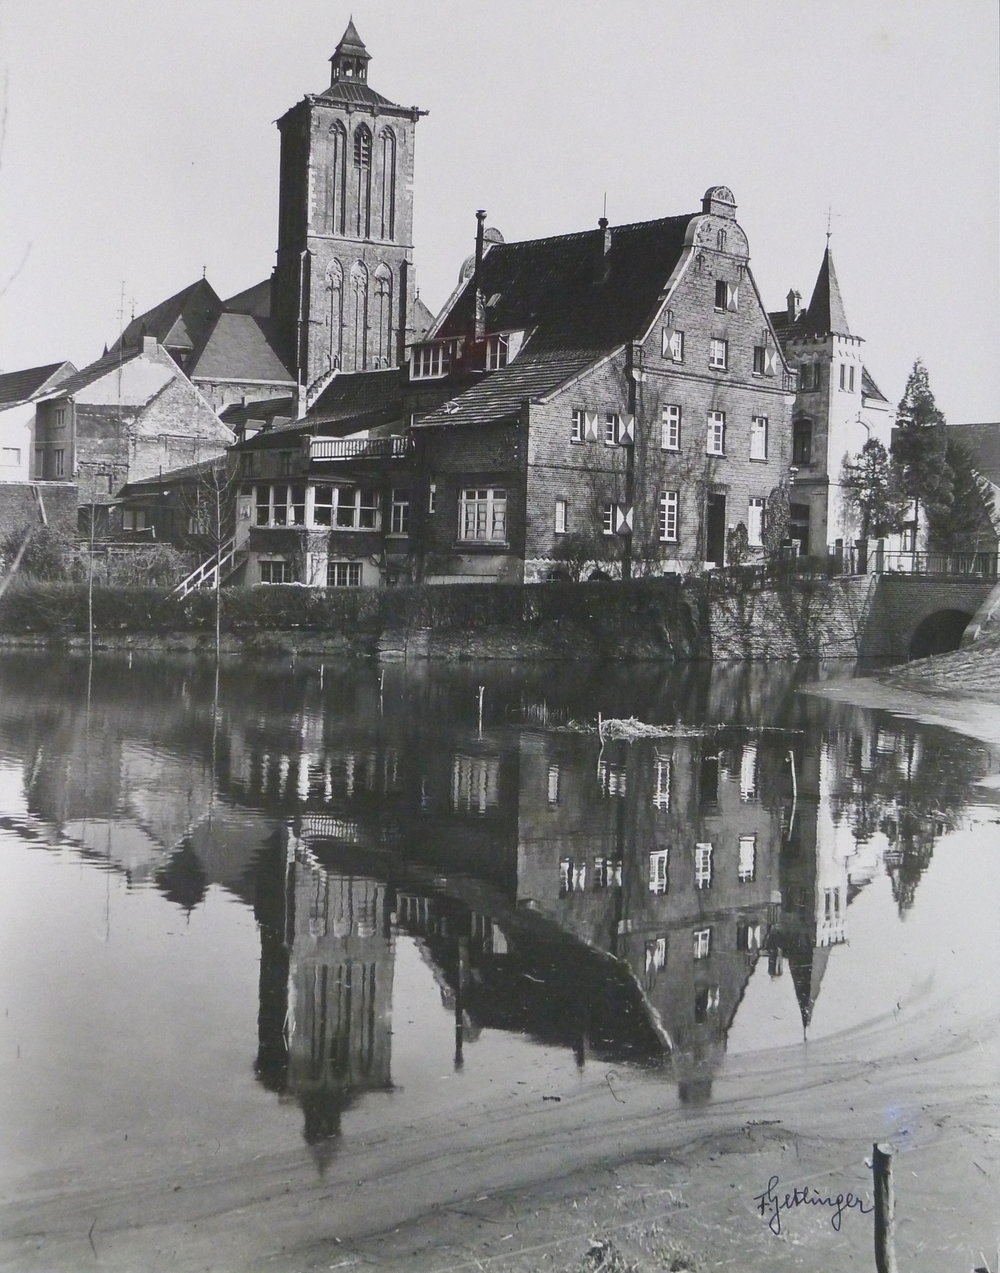 Fritz Getlinger,  Kleve-Schenkenschanz: Former Fortress Site on the Rhine , 20th century, gelatin silver print, Gift of Fritz Getlinger in his lifetime on a visit to Fitchburg, Kleve's sister city, 2016.98